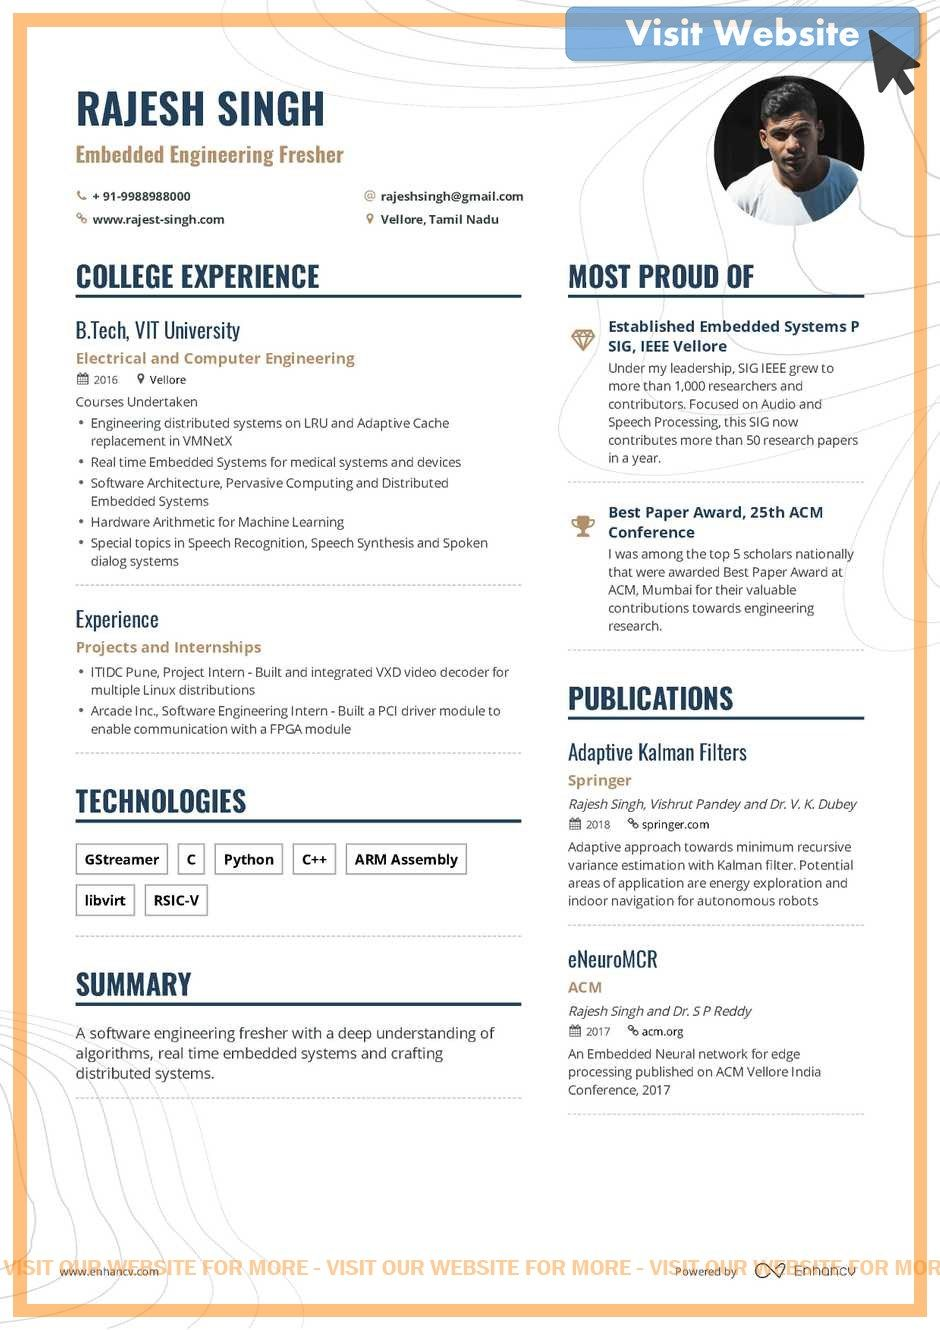 mba covering letter example best resume format job for freshers examples paper target Resume Job Resume Examples 2021